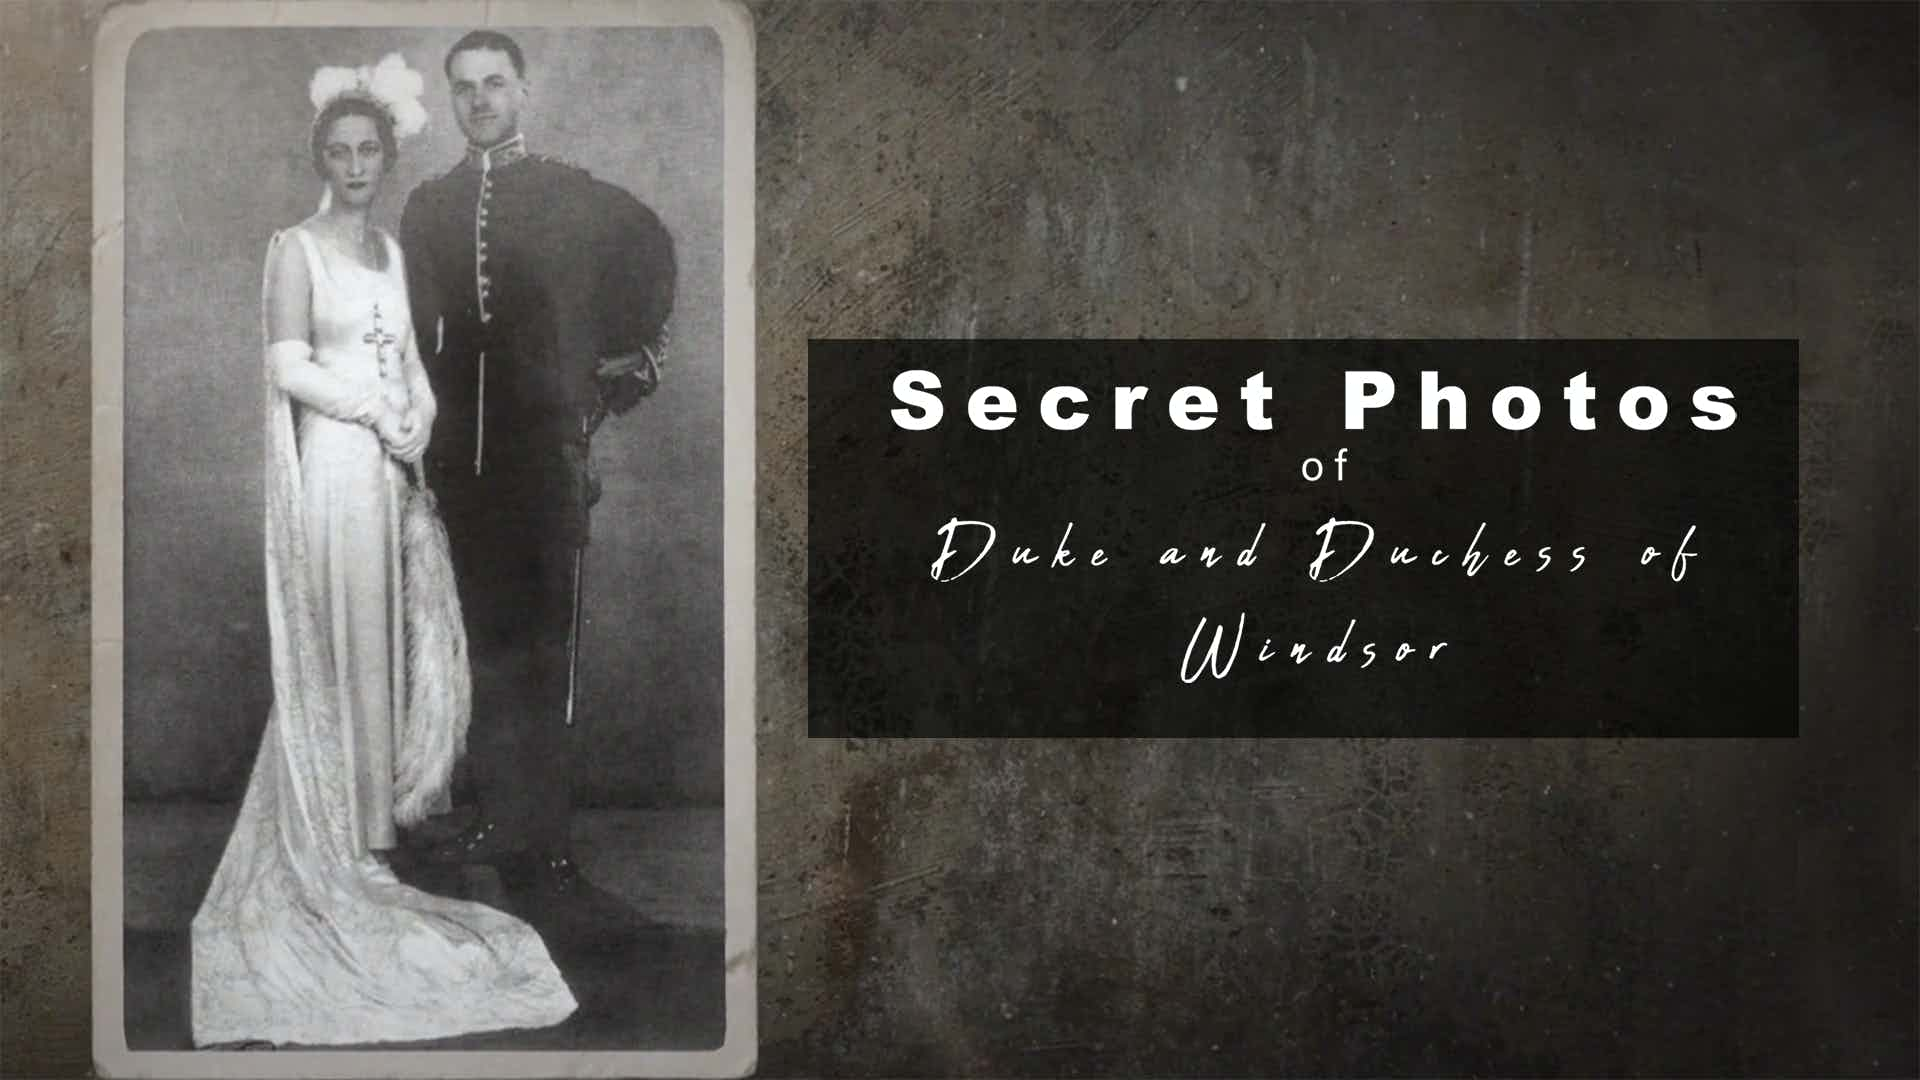 The Secret Photos of the Duke and Duchess of Windsor